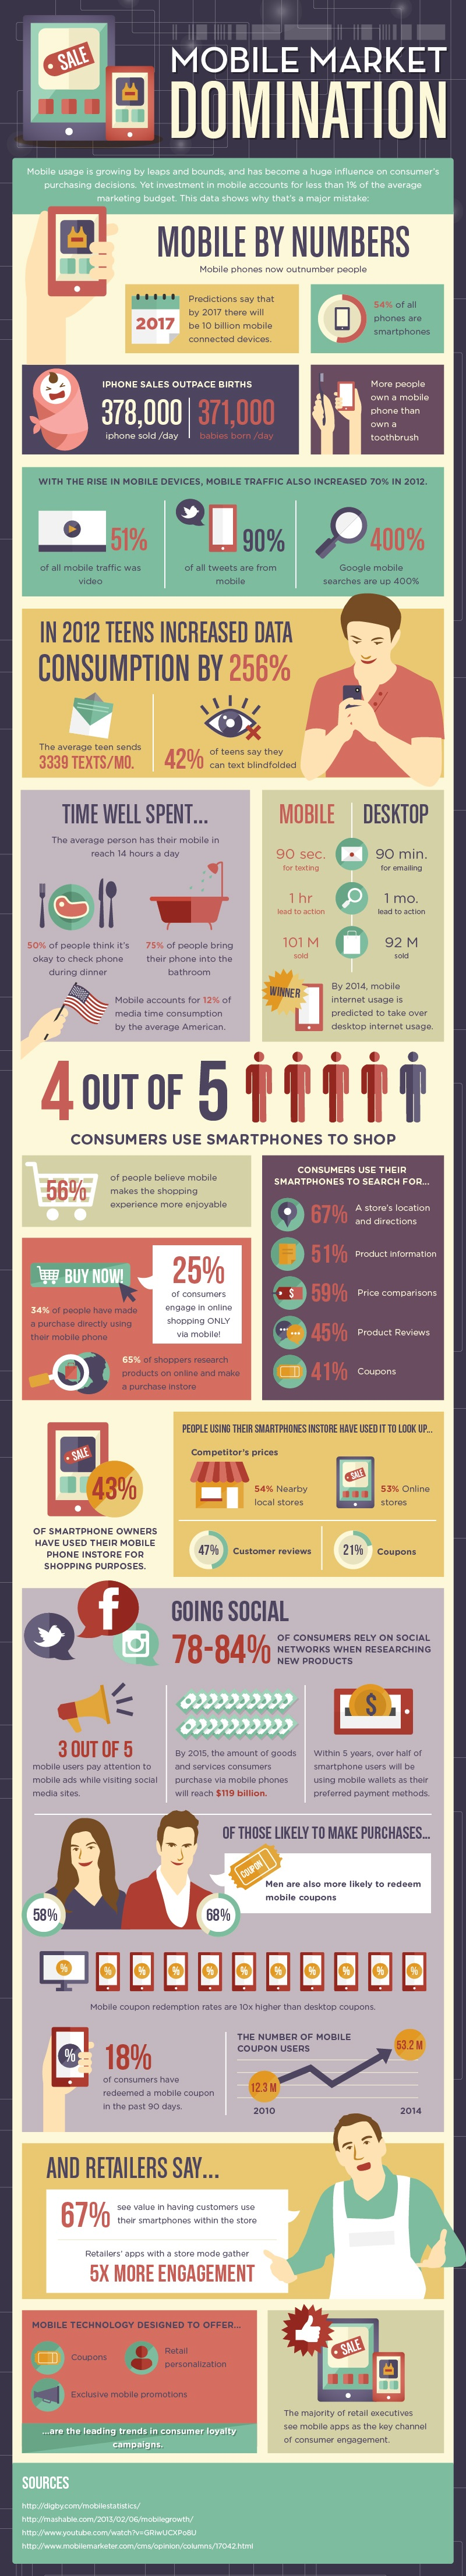 mobile market infographic